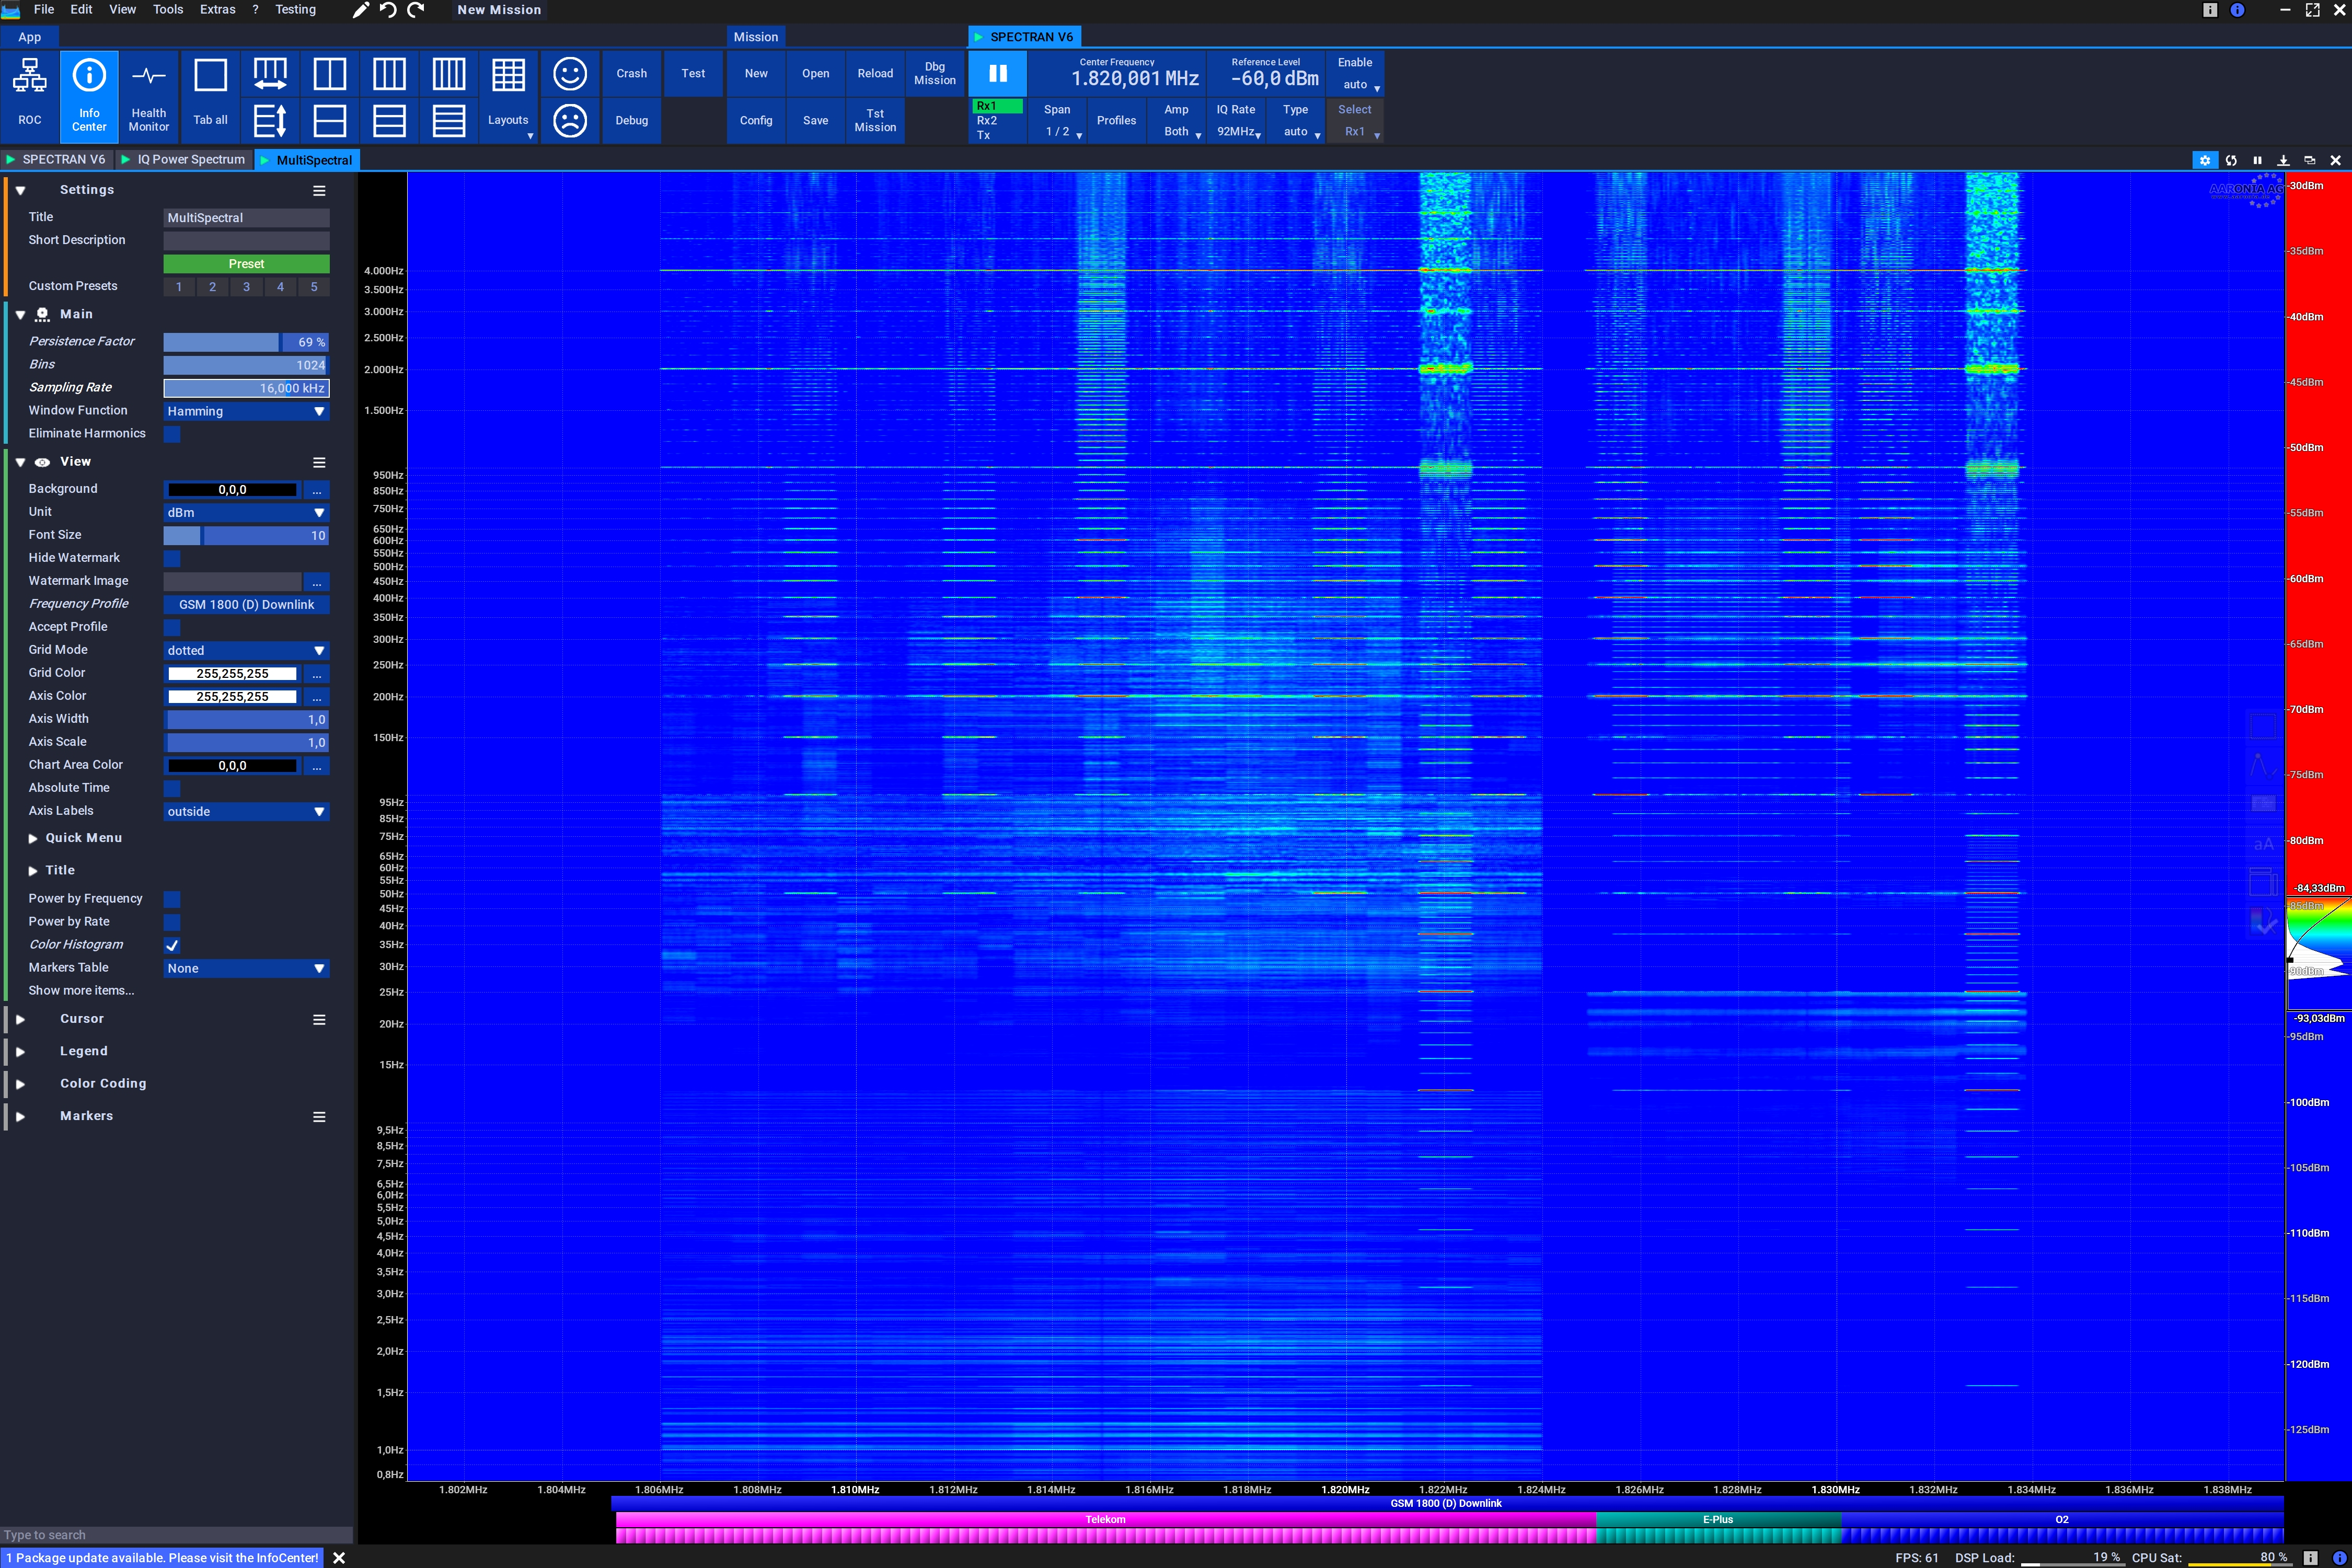 MultiSpectral Screenshot showing all Harmonics from GSM Basestations